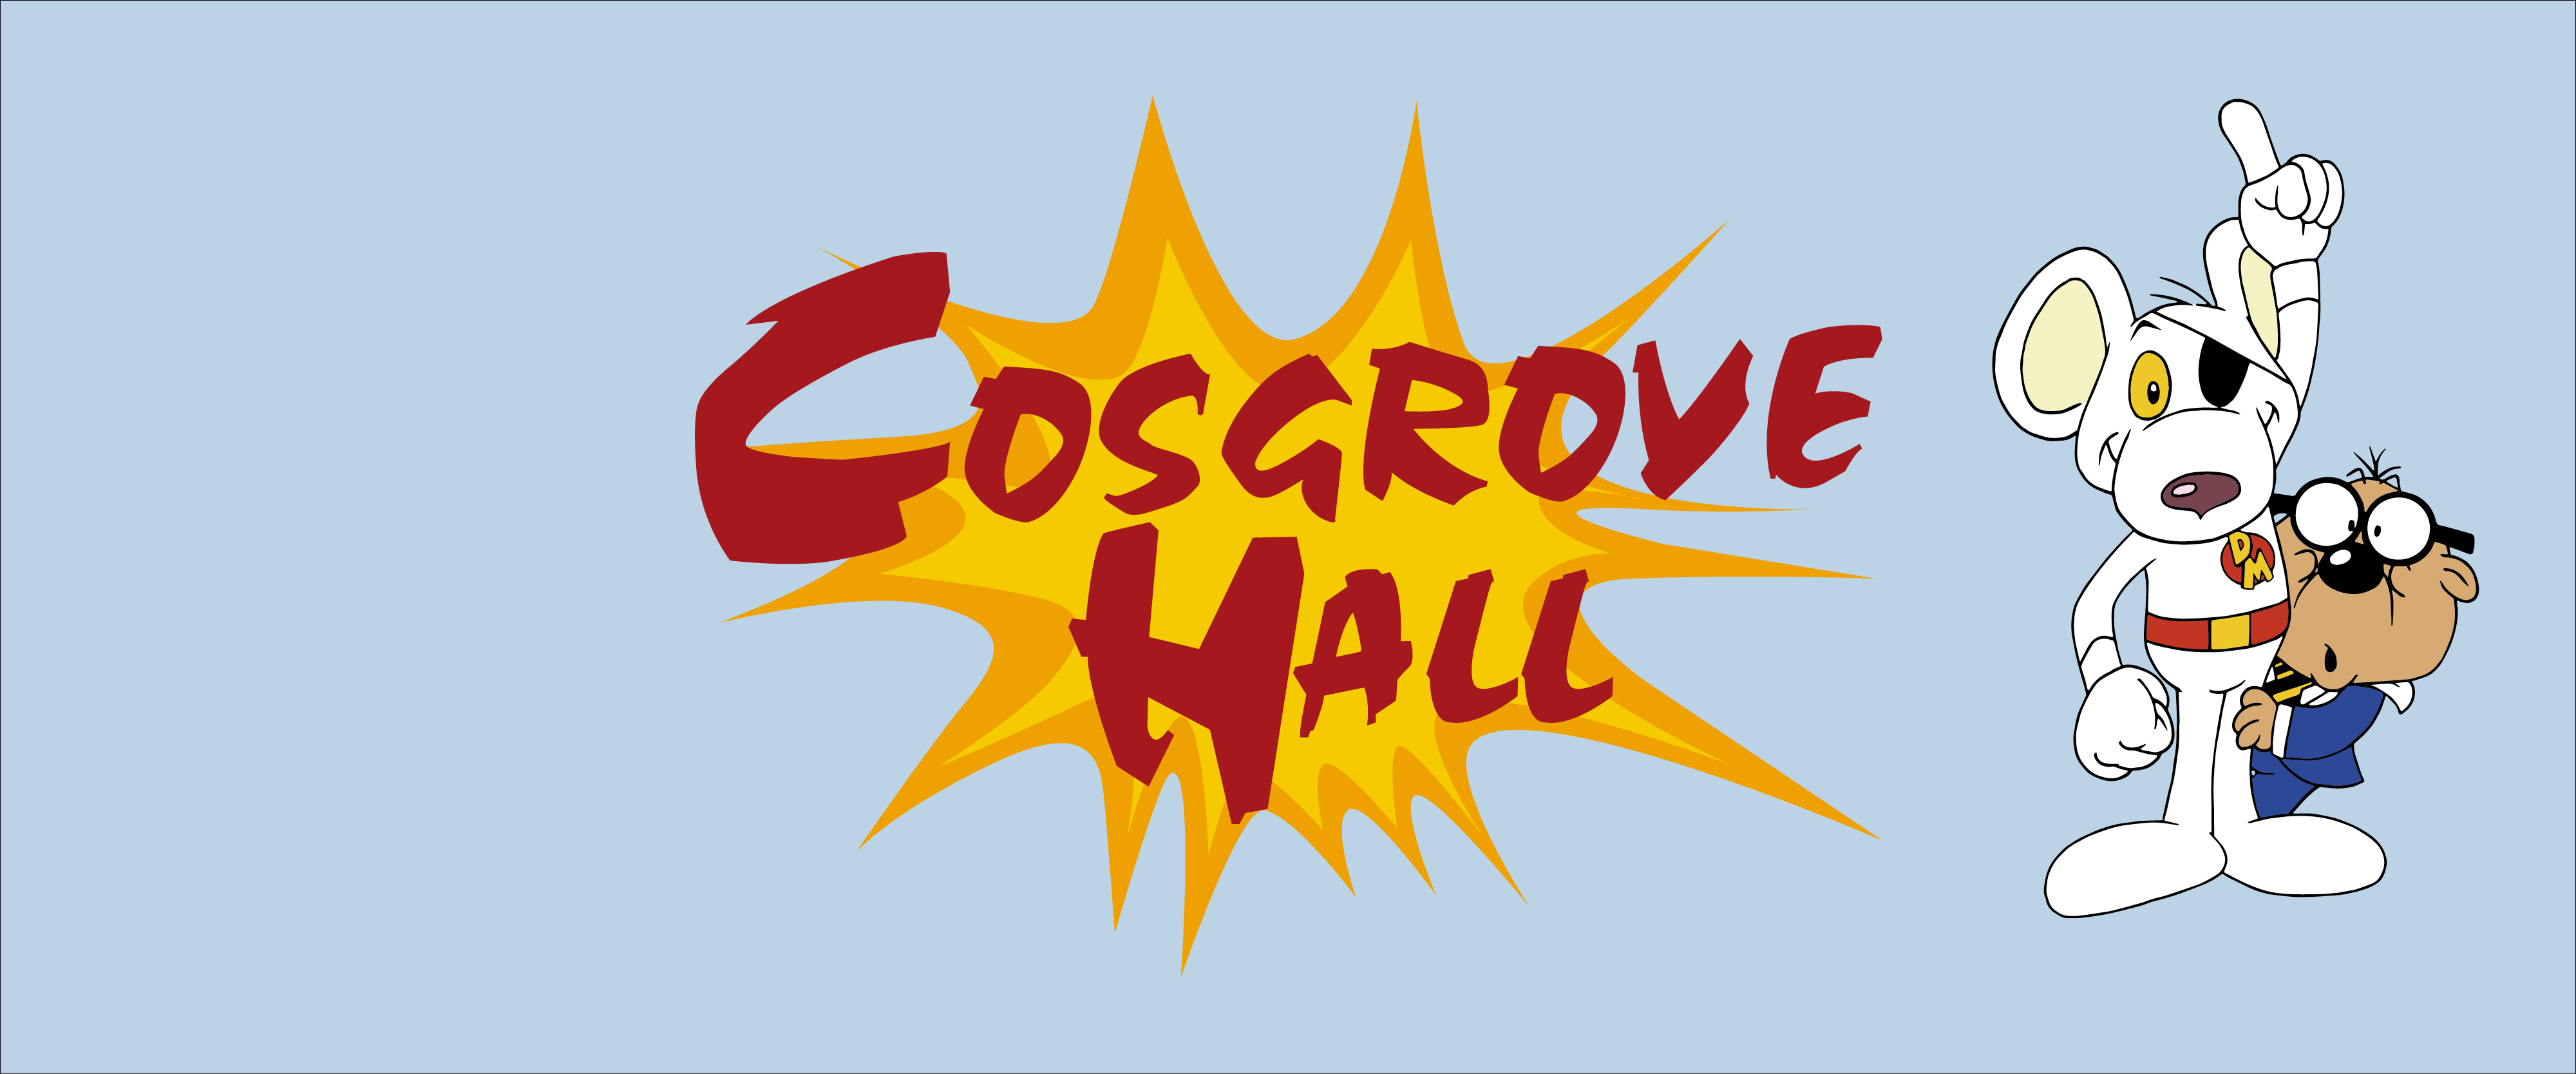 Cosgrove Hall Films exhibition